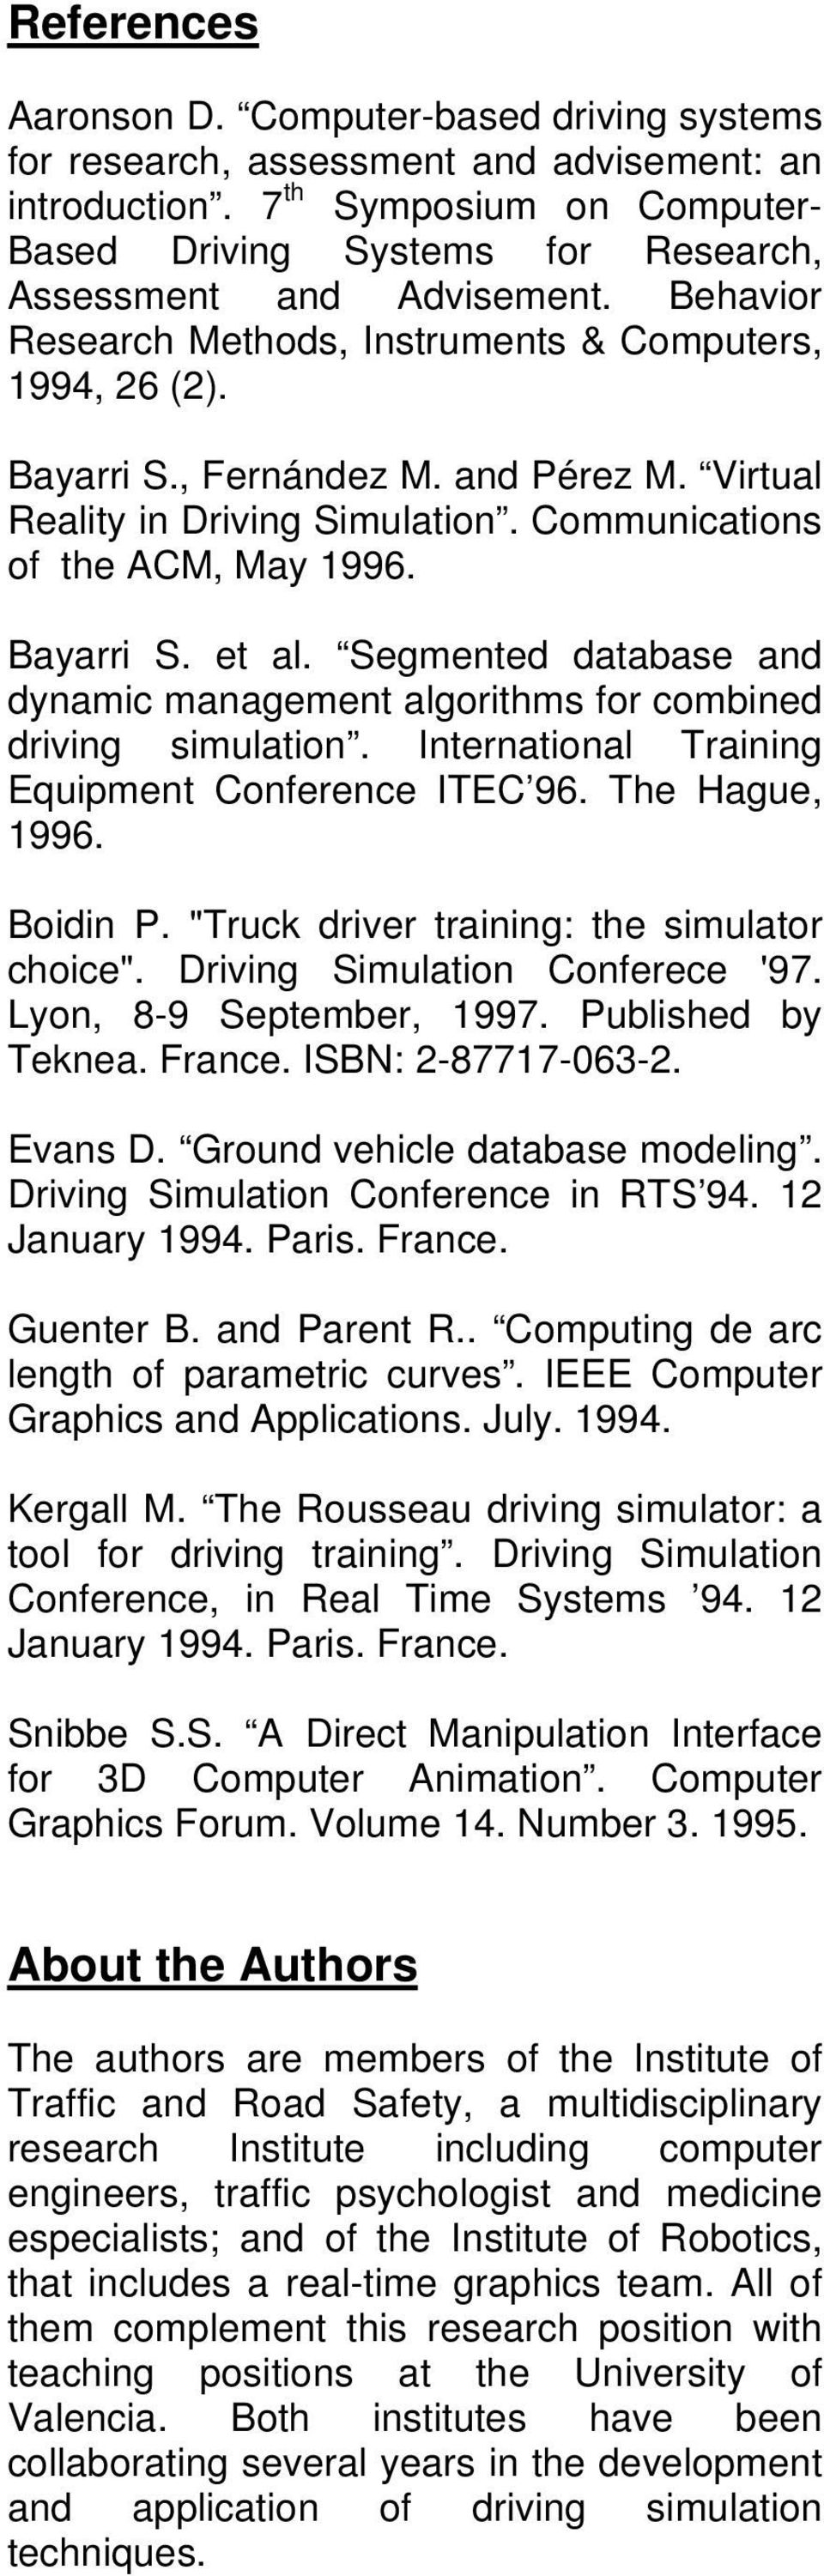 Virtual Reality in Driving Simulation. Communications of the ACM, May 1996. Bayarri S. et al. Segmented database and dynamic management algorithms for combined driving simulation.